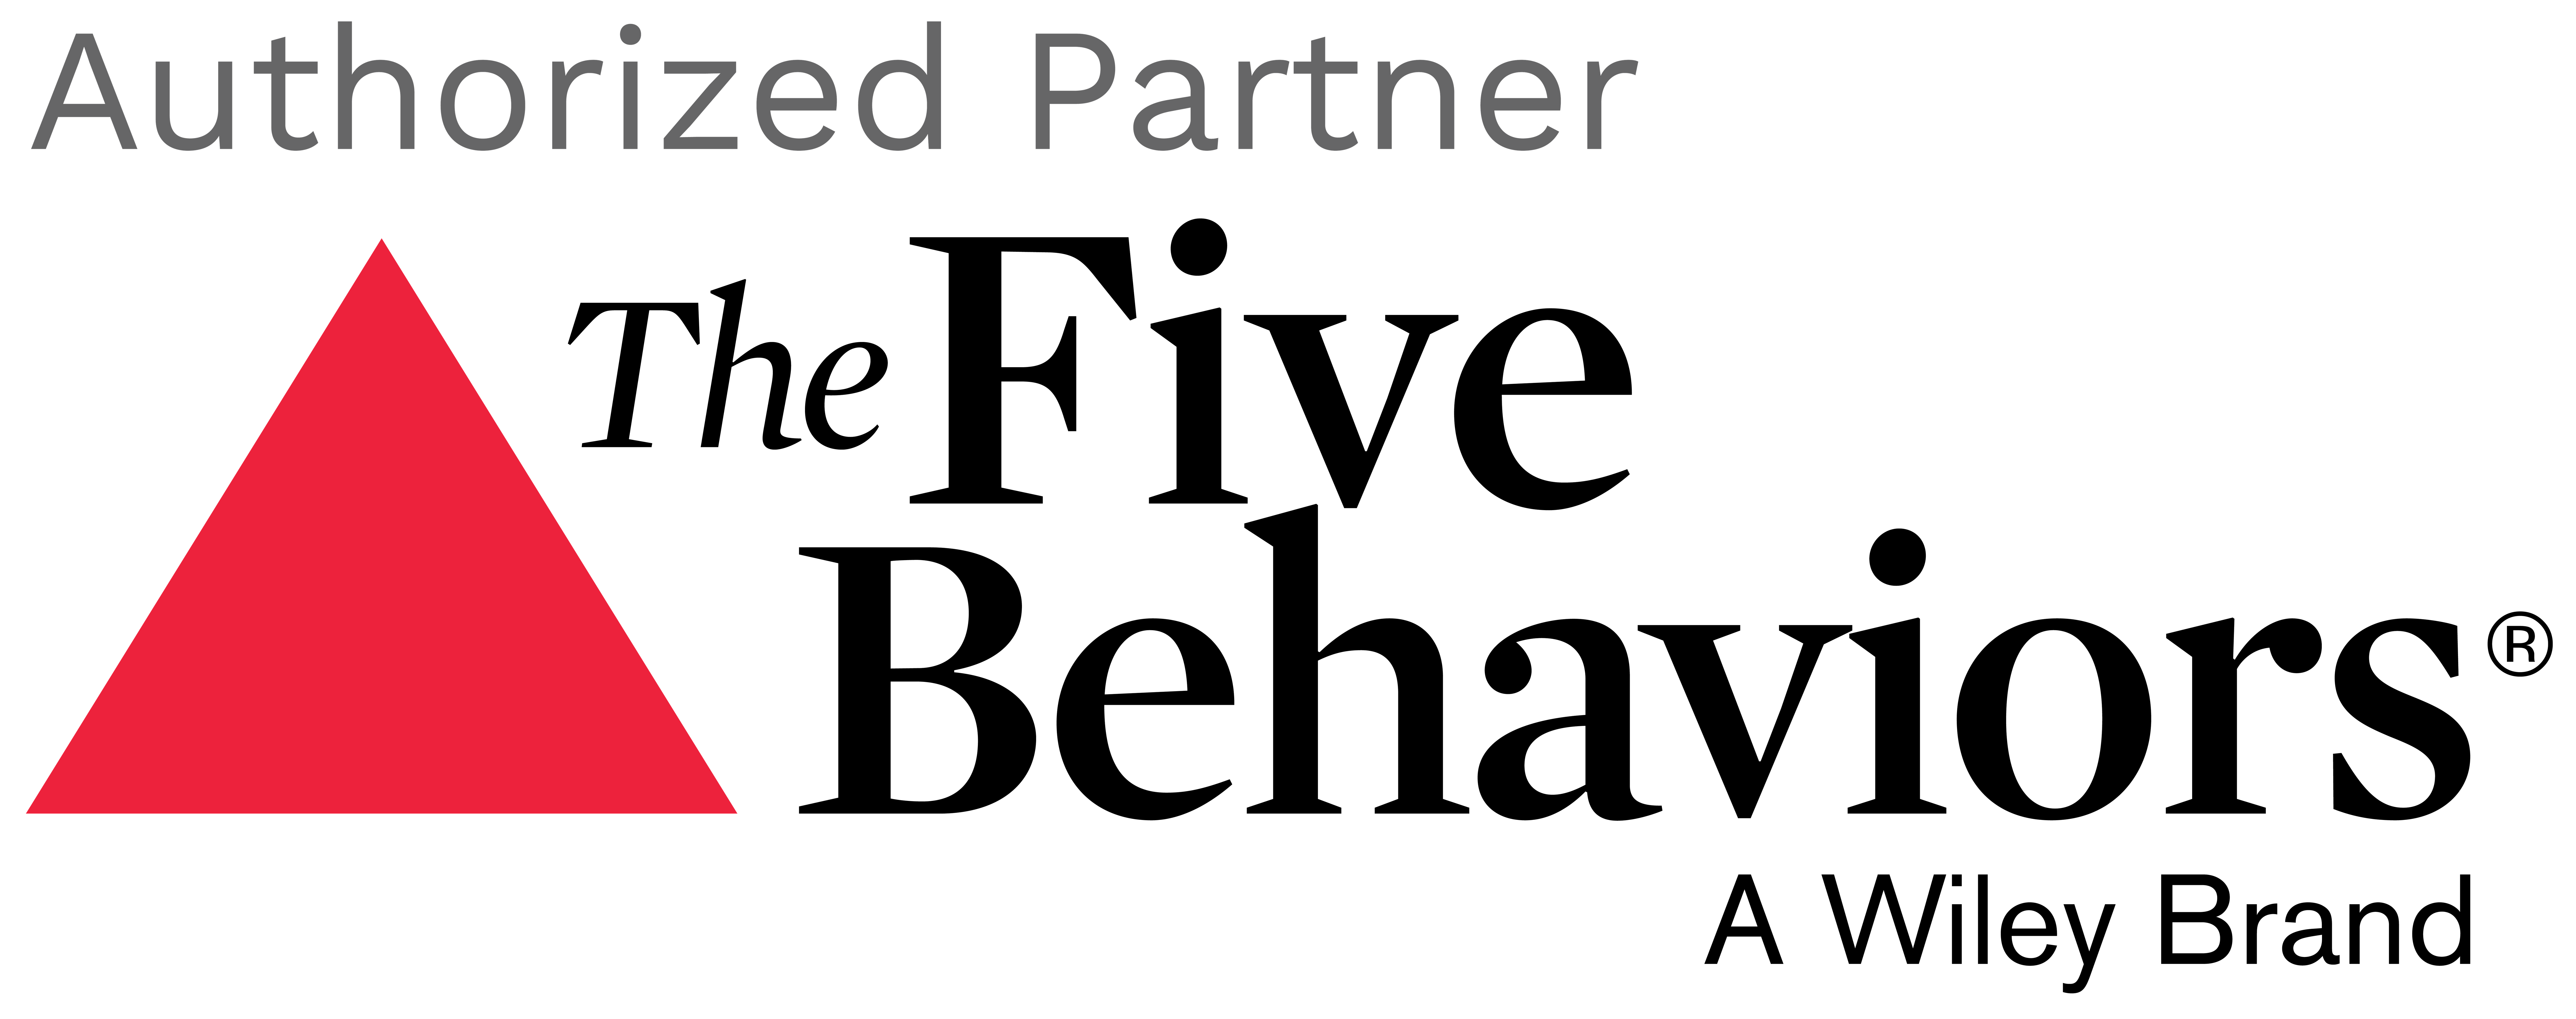 5 Behaviors